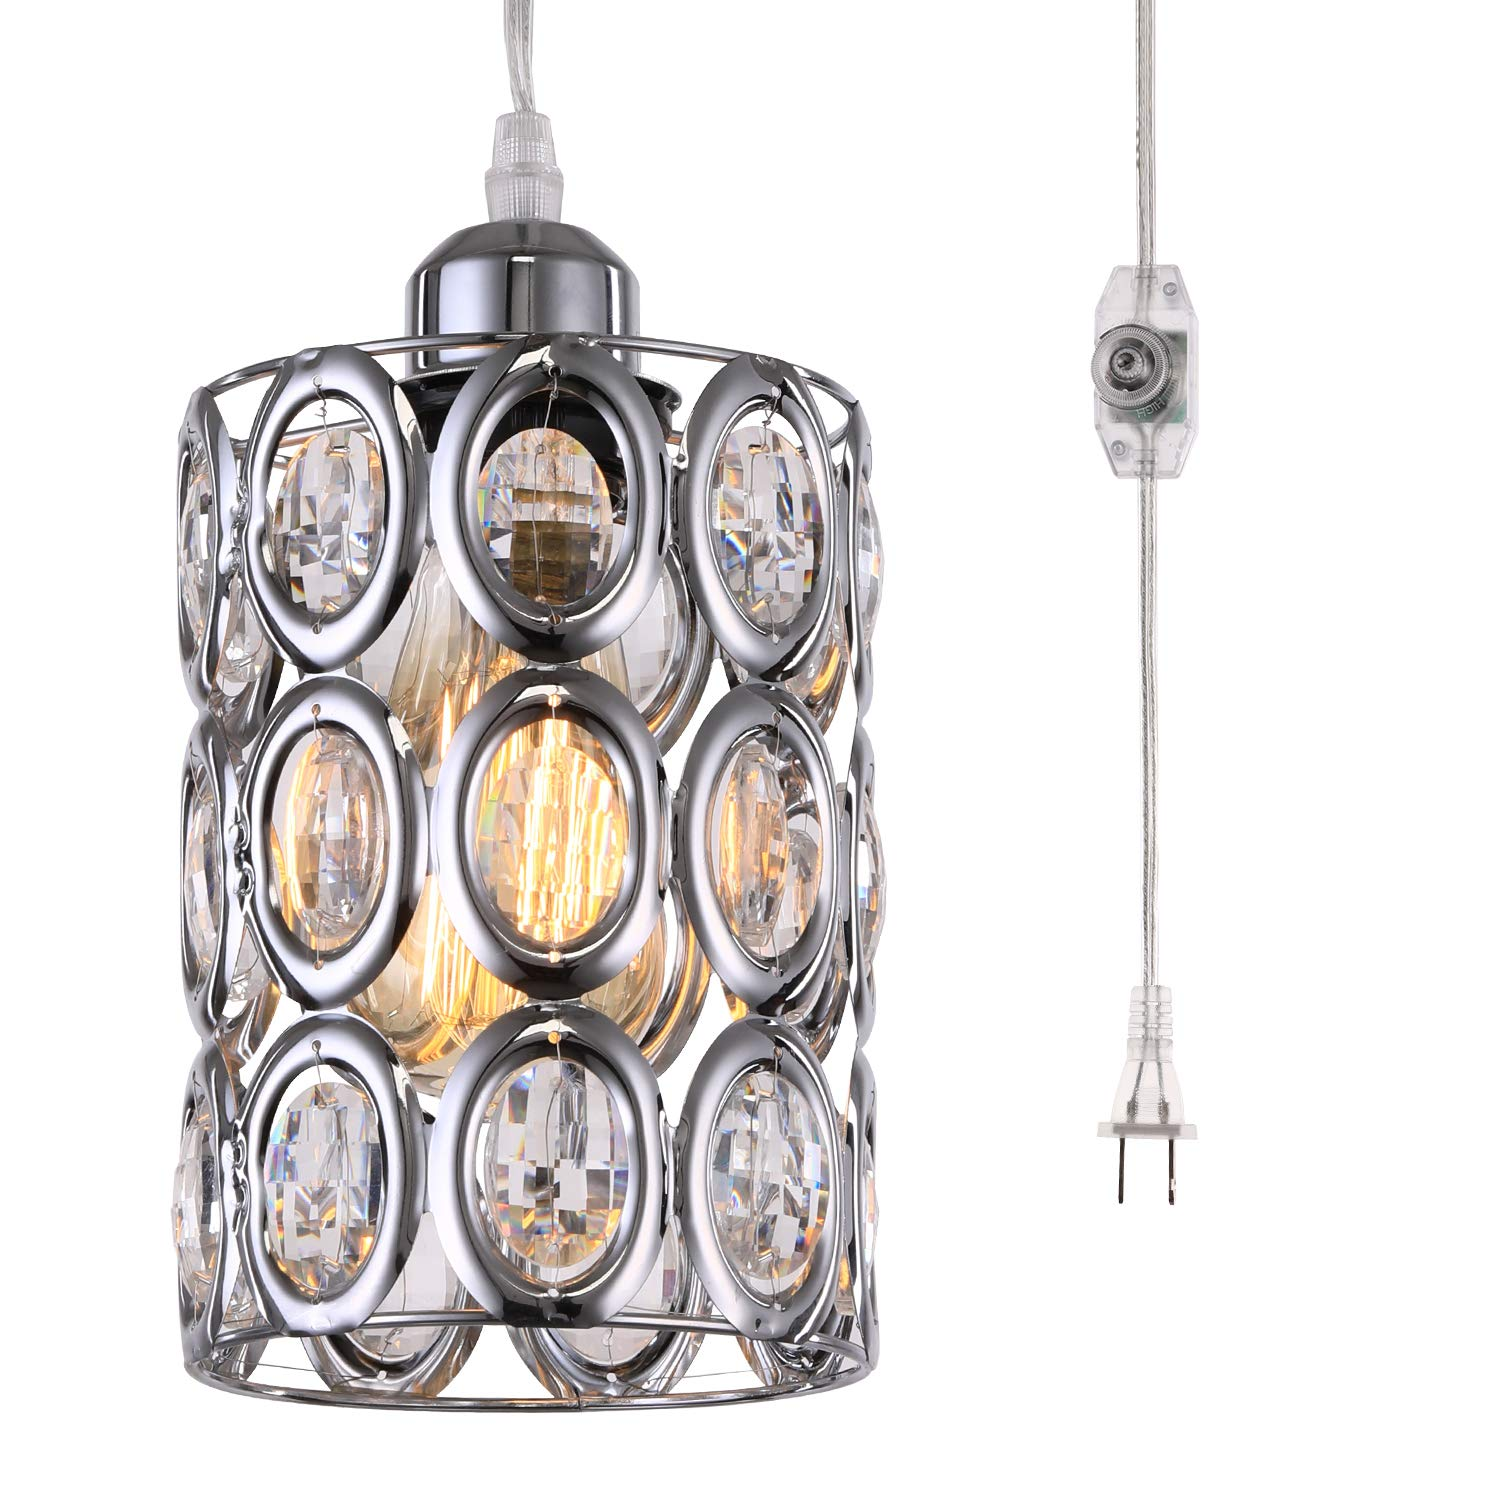 HMVPL Plug in Crystal Pendant Light with ON/Off Dimmer Switch and 16.4 ft Clear Hanging Cord, Modern Chrome Cylinder Chandelier Swag Lamp for Kitchen Island Dining Table Bedroom Girls Cabinet Closet